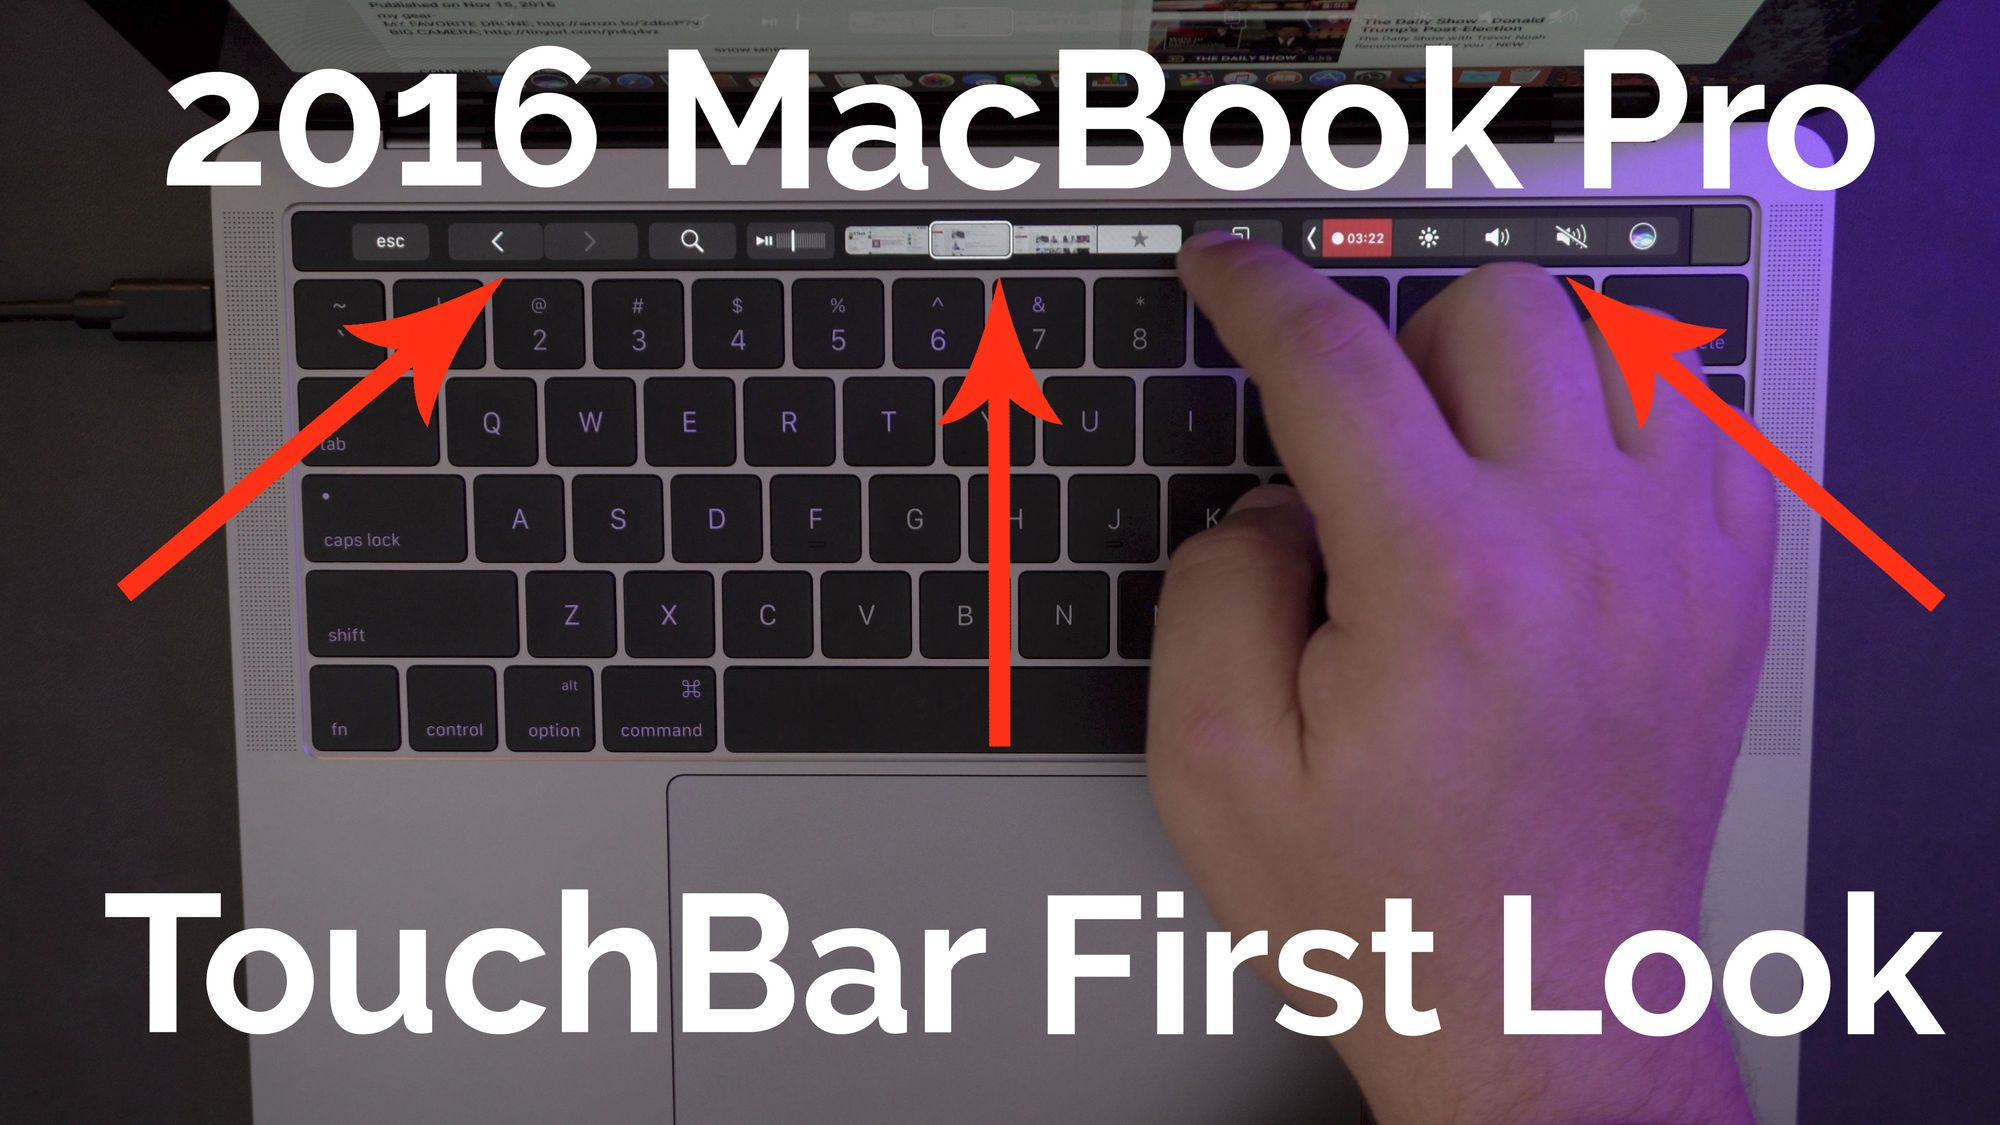 First Look: Touch Bar Features on 2016 MacBook Pro